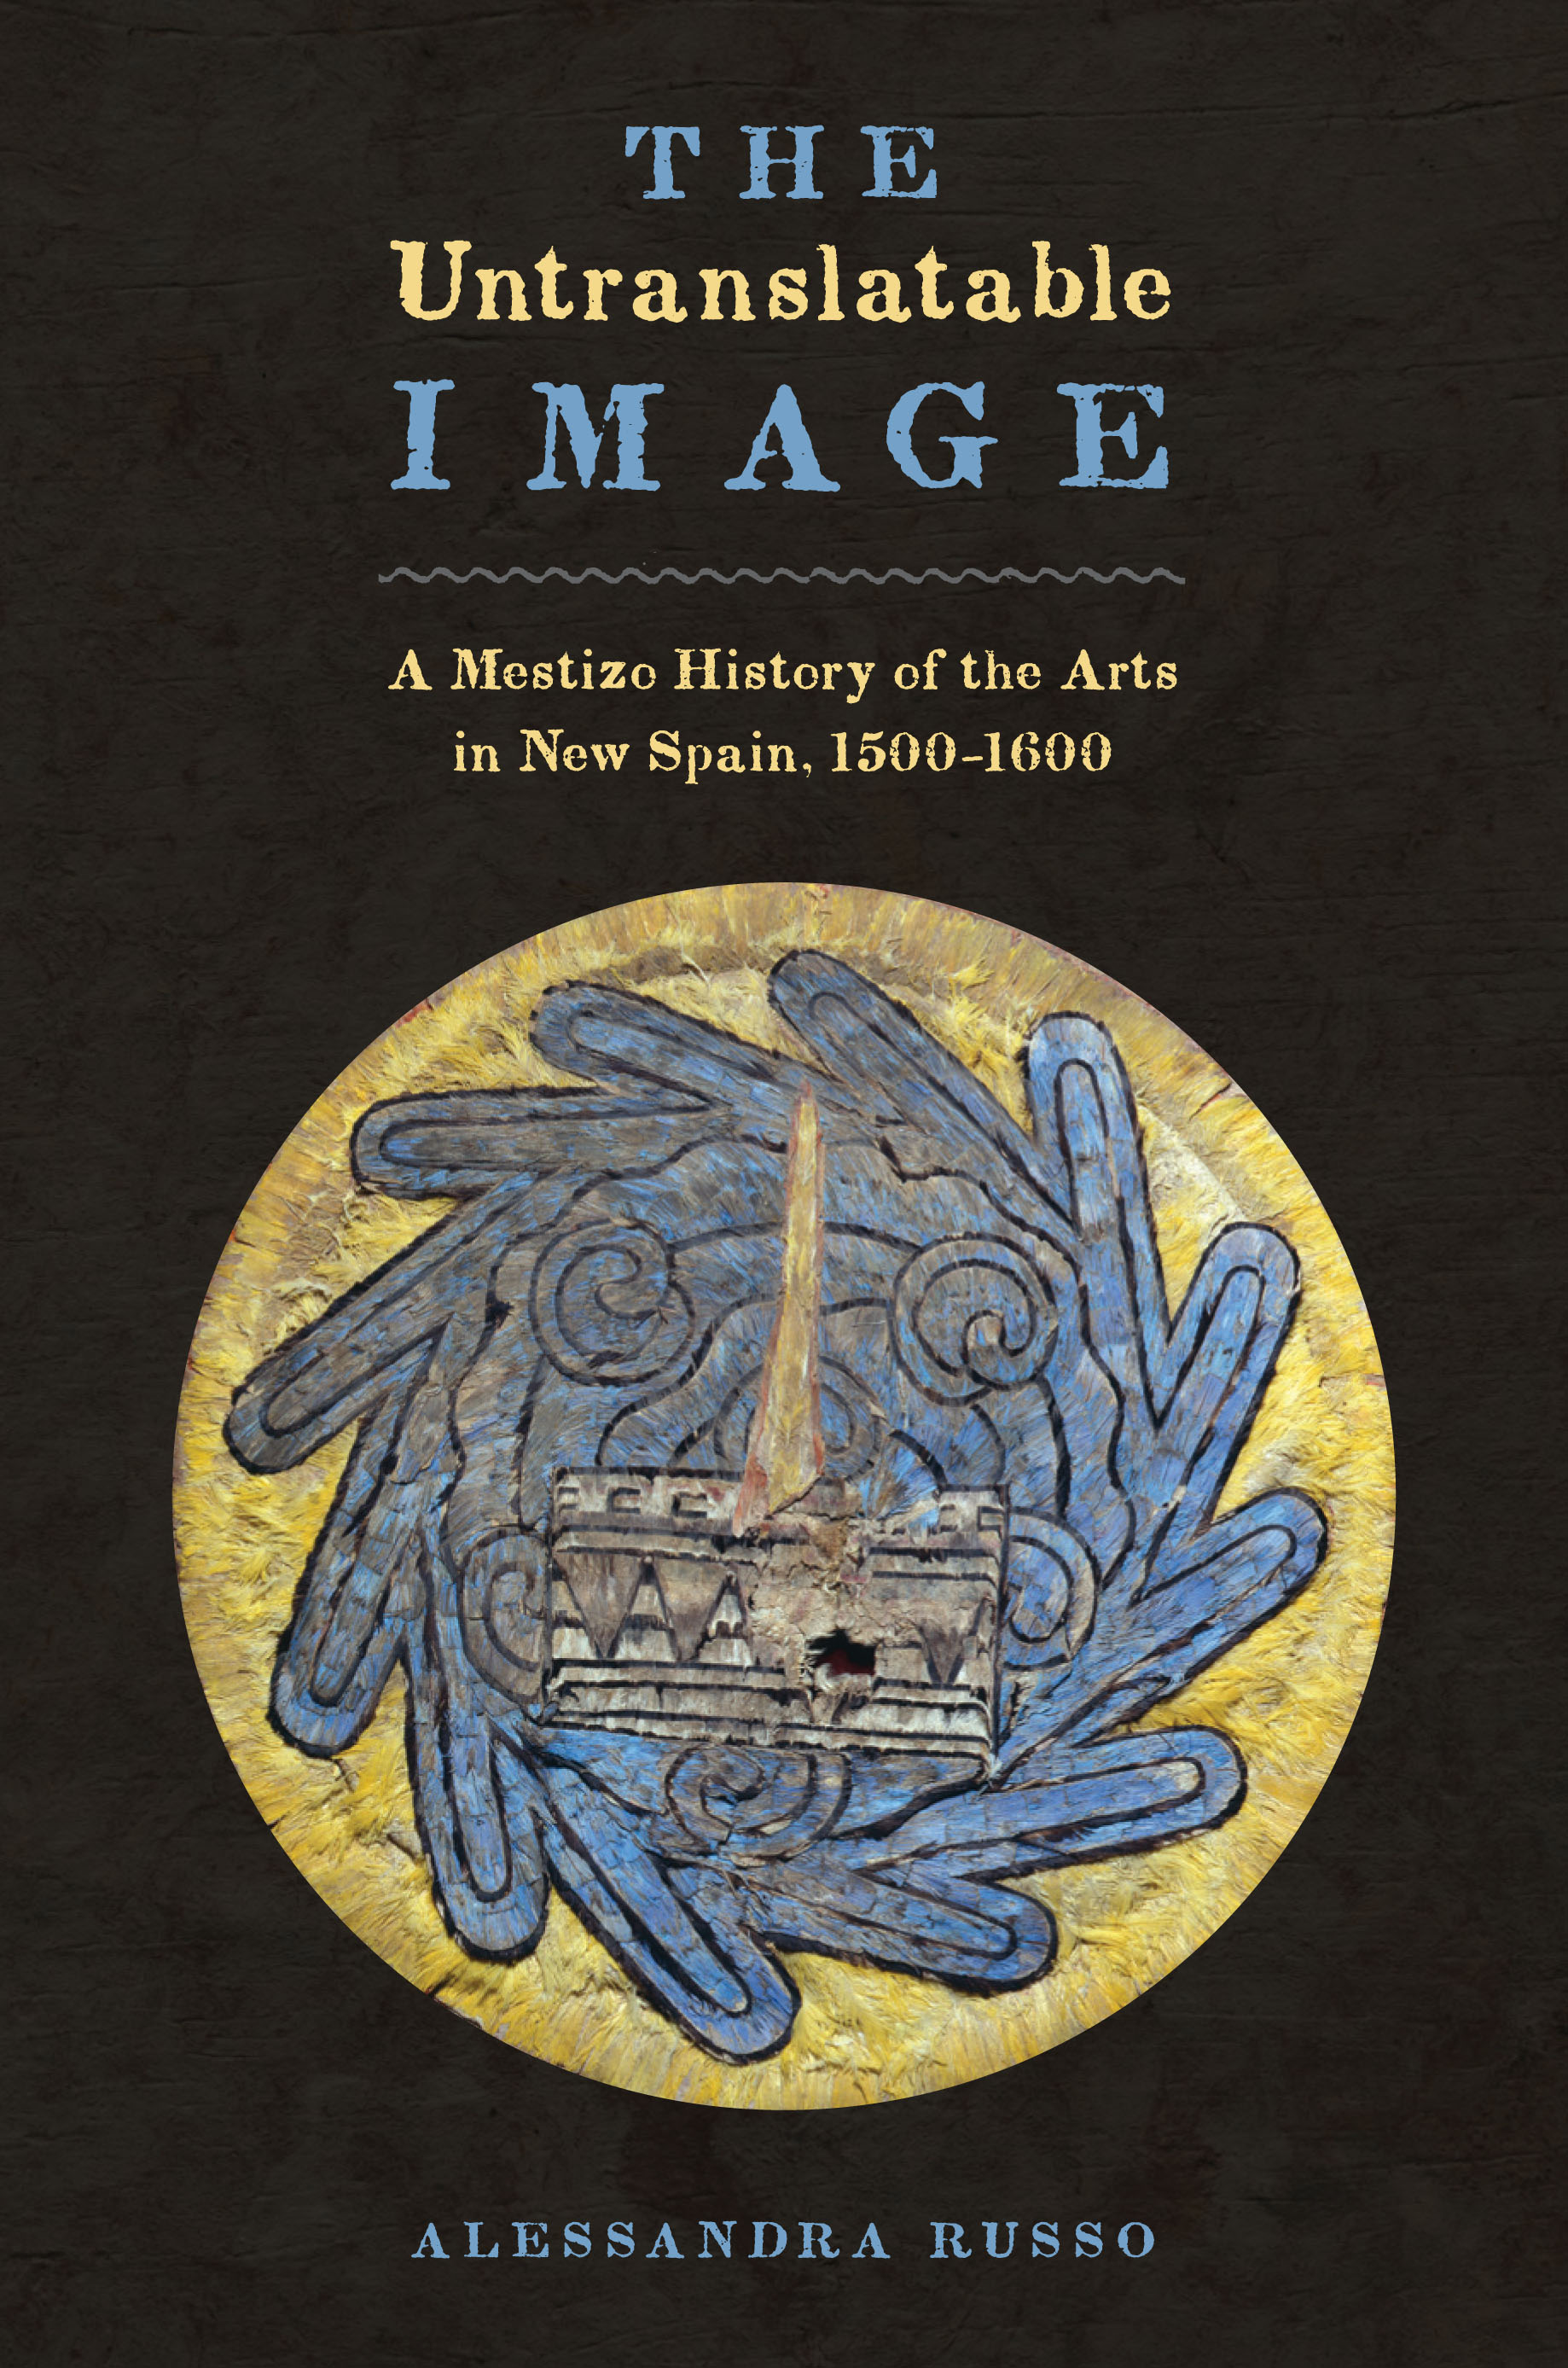 Cover of The Untranslatable Image